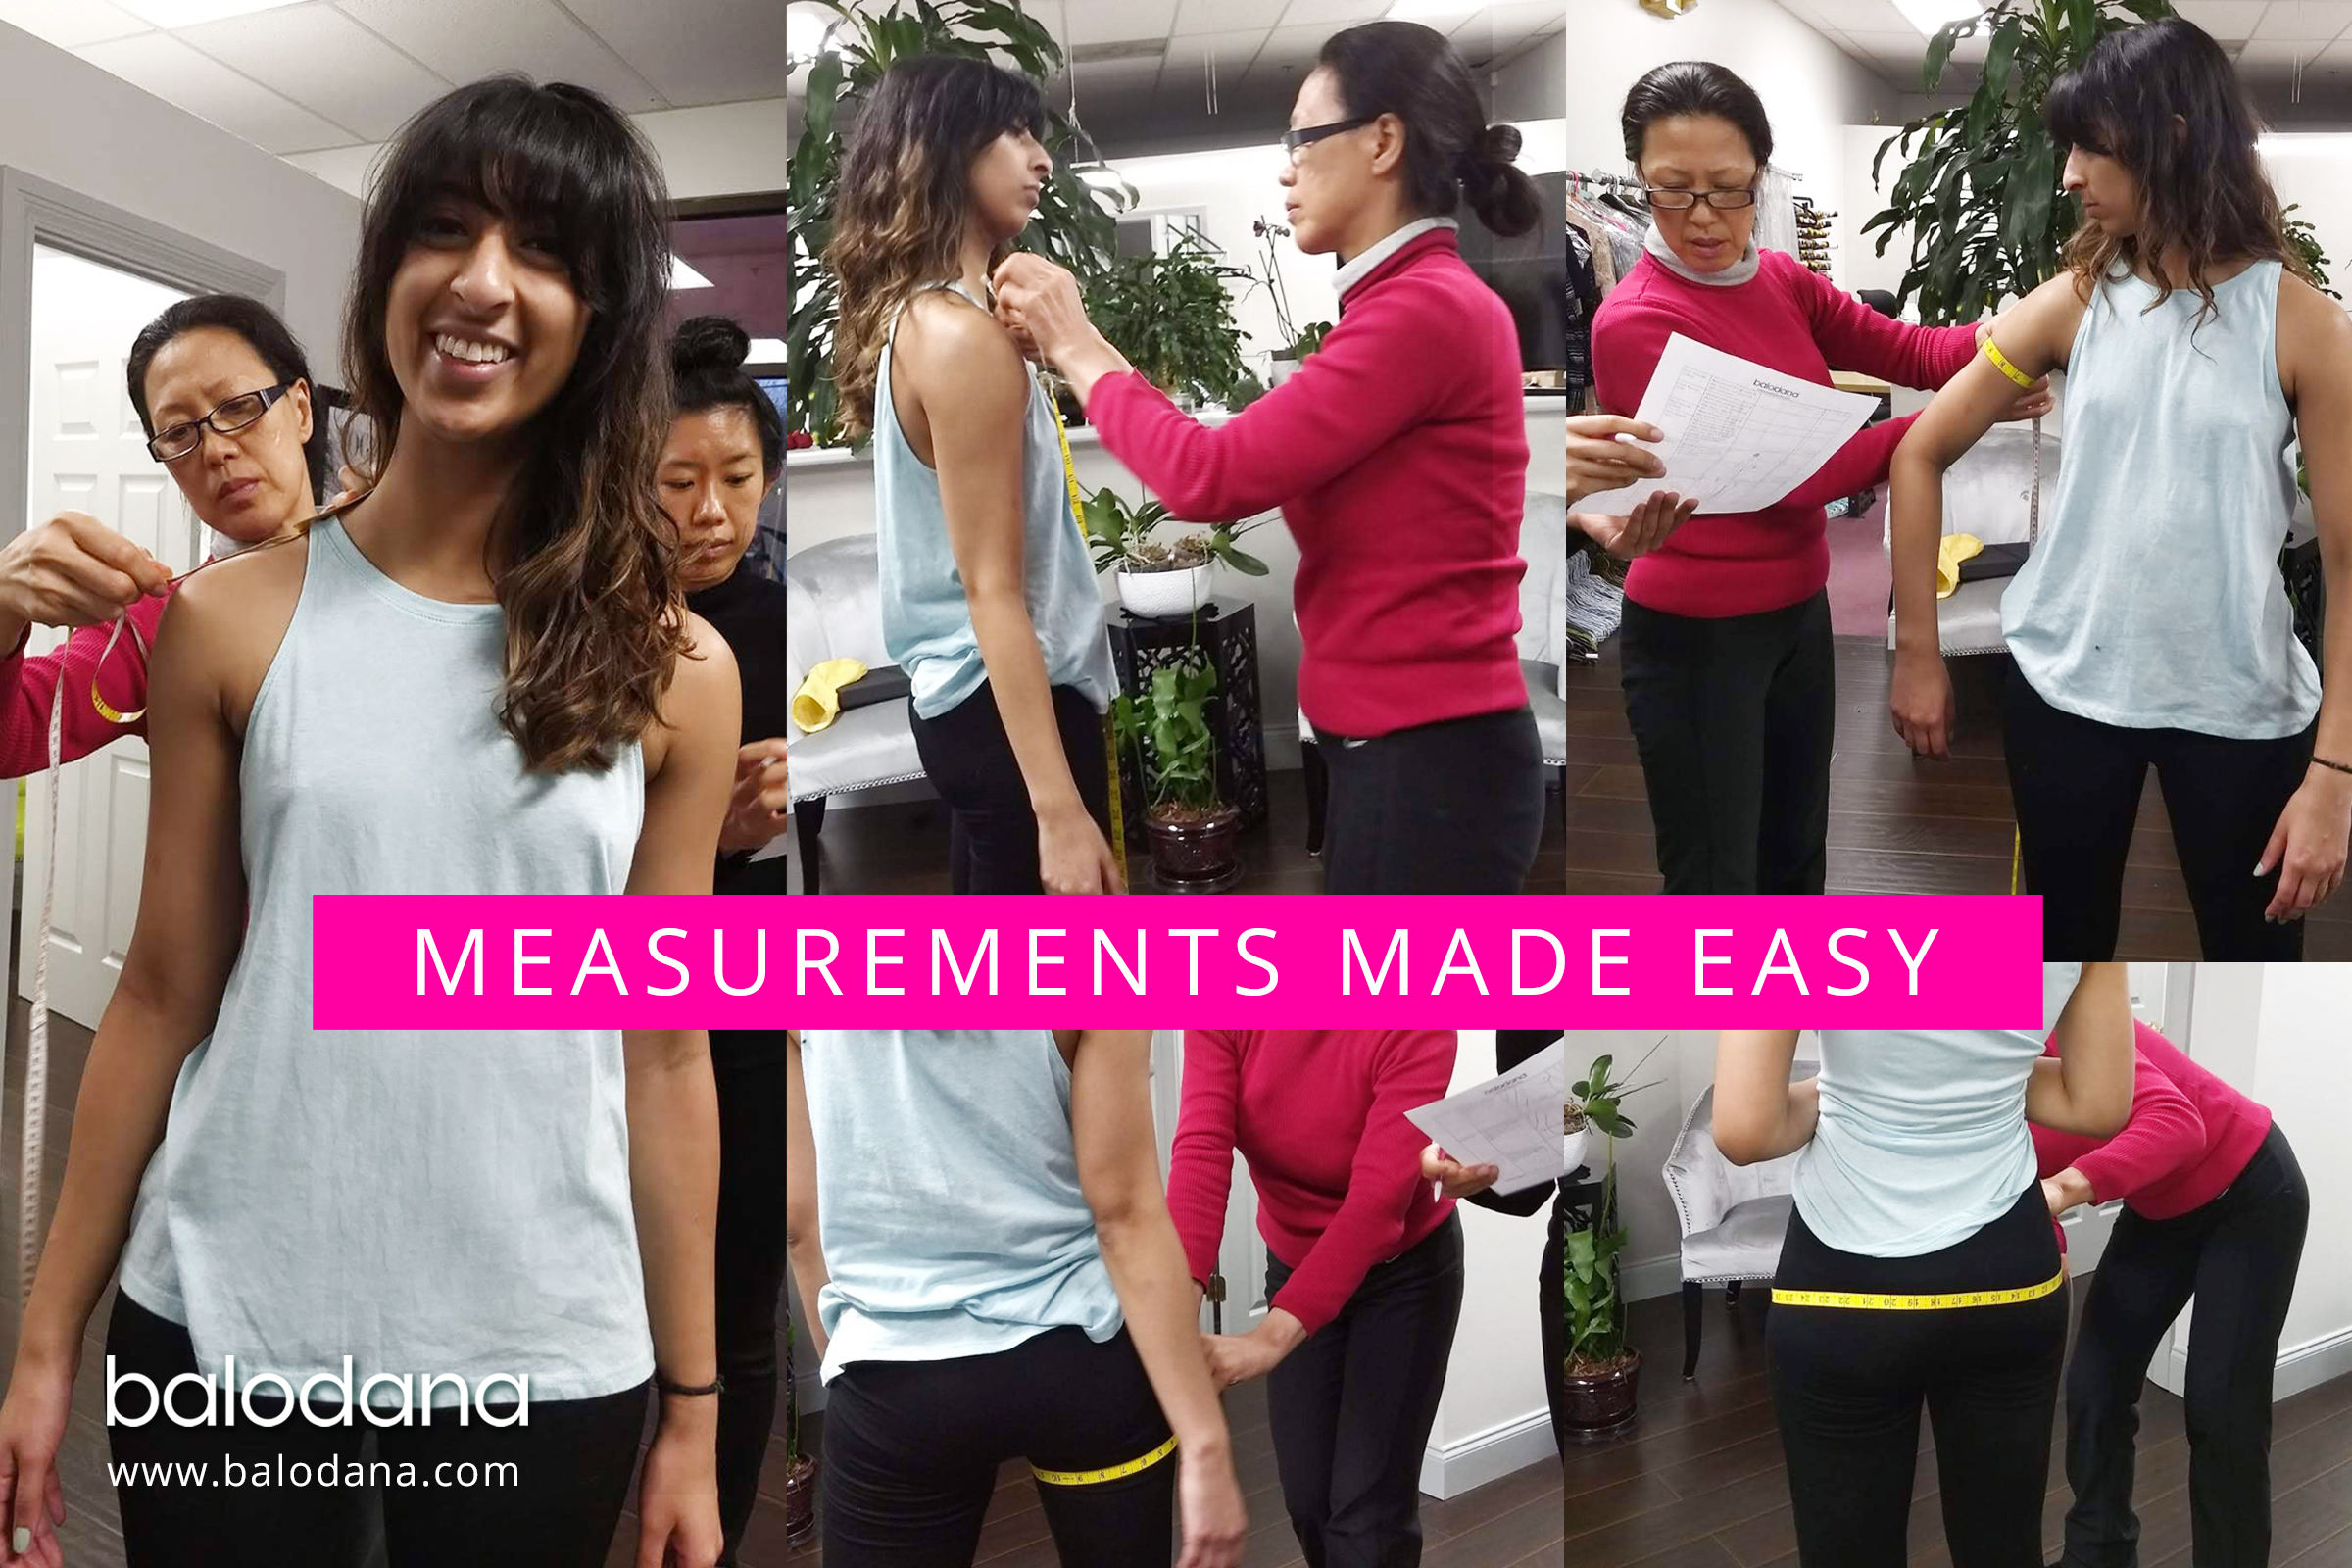 5 Steps to Hosting Your Own Measurement Party